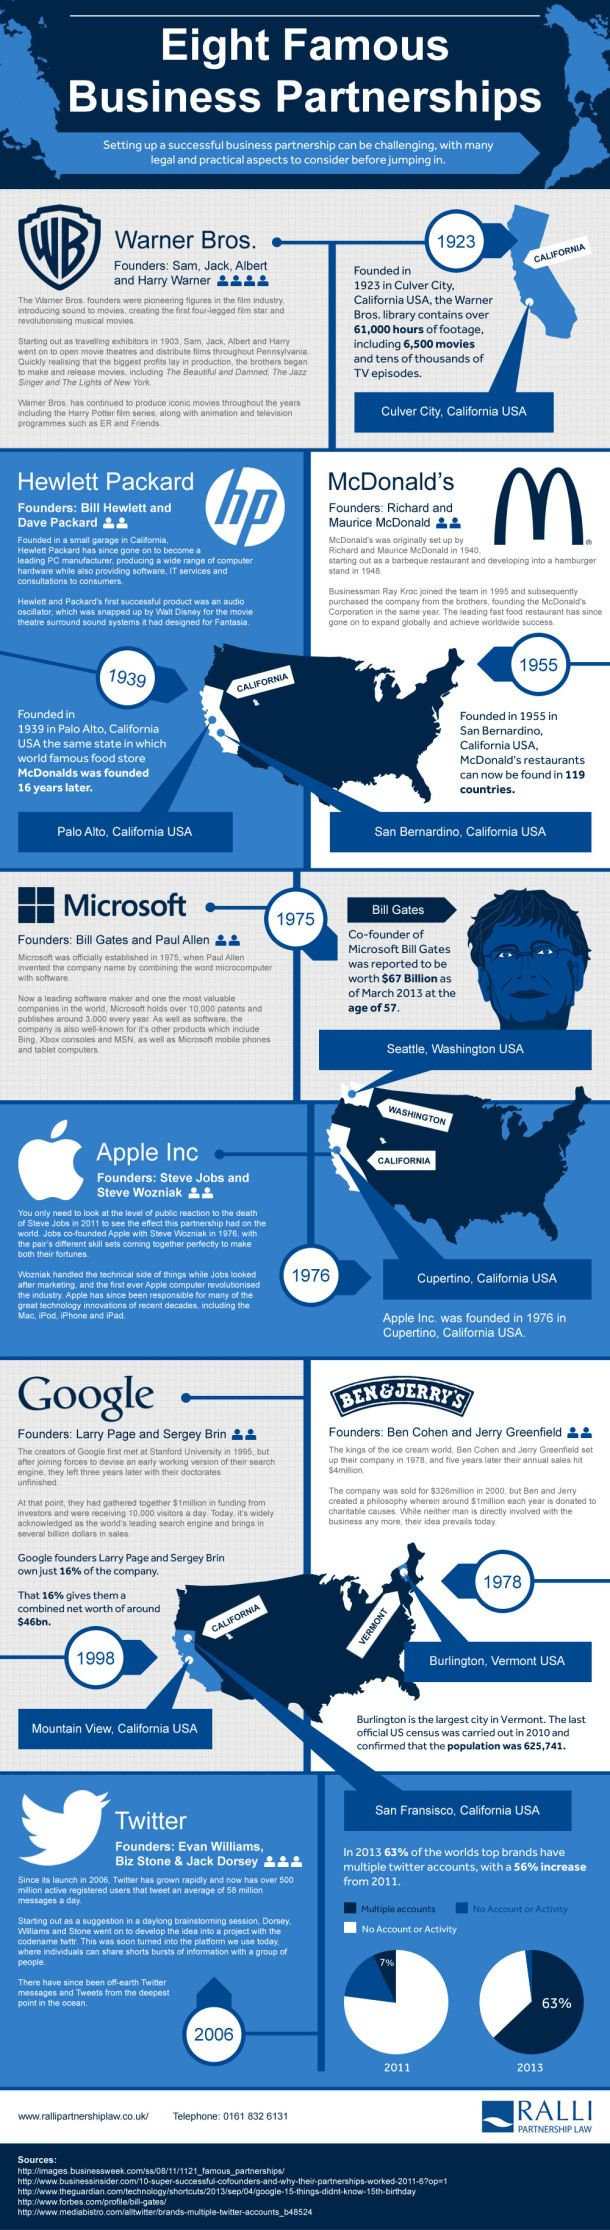 Eight Famous Business Partnerships [INFOGRAPHIC] #business#partnerships